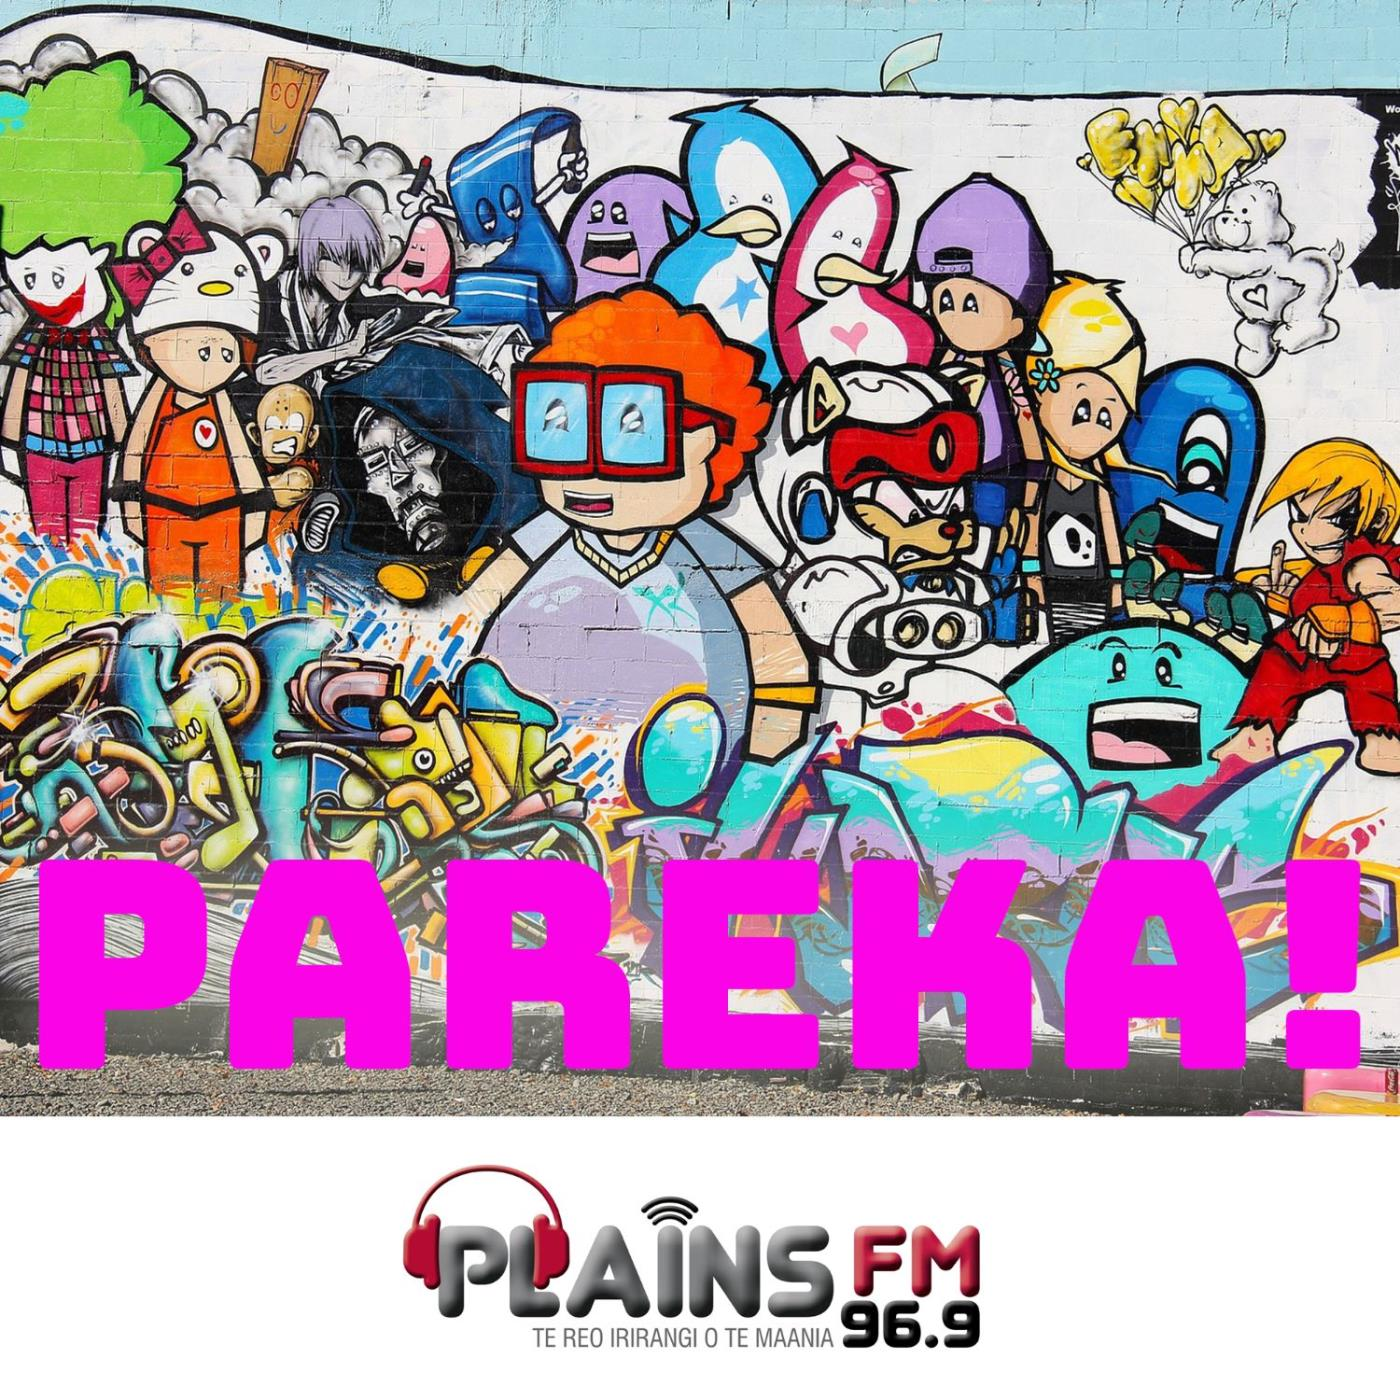 Pareka- The One About Covid-19 Vaccinations